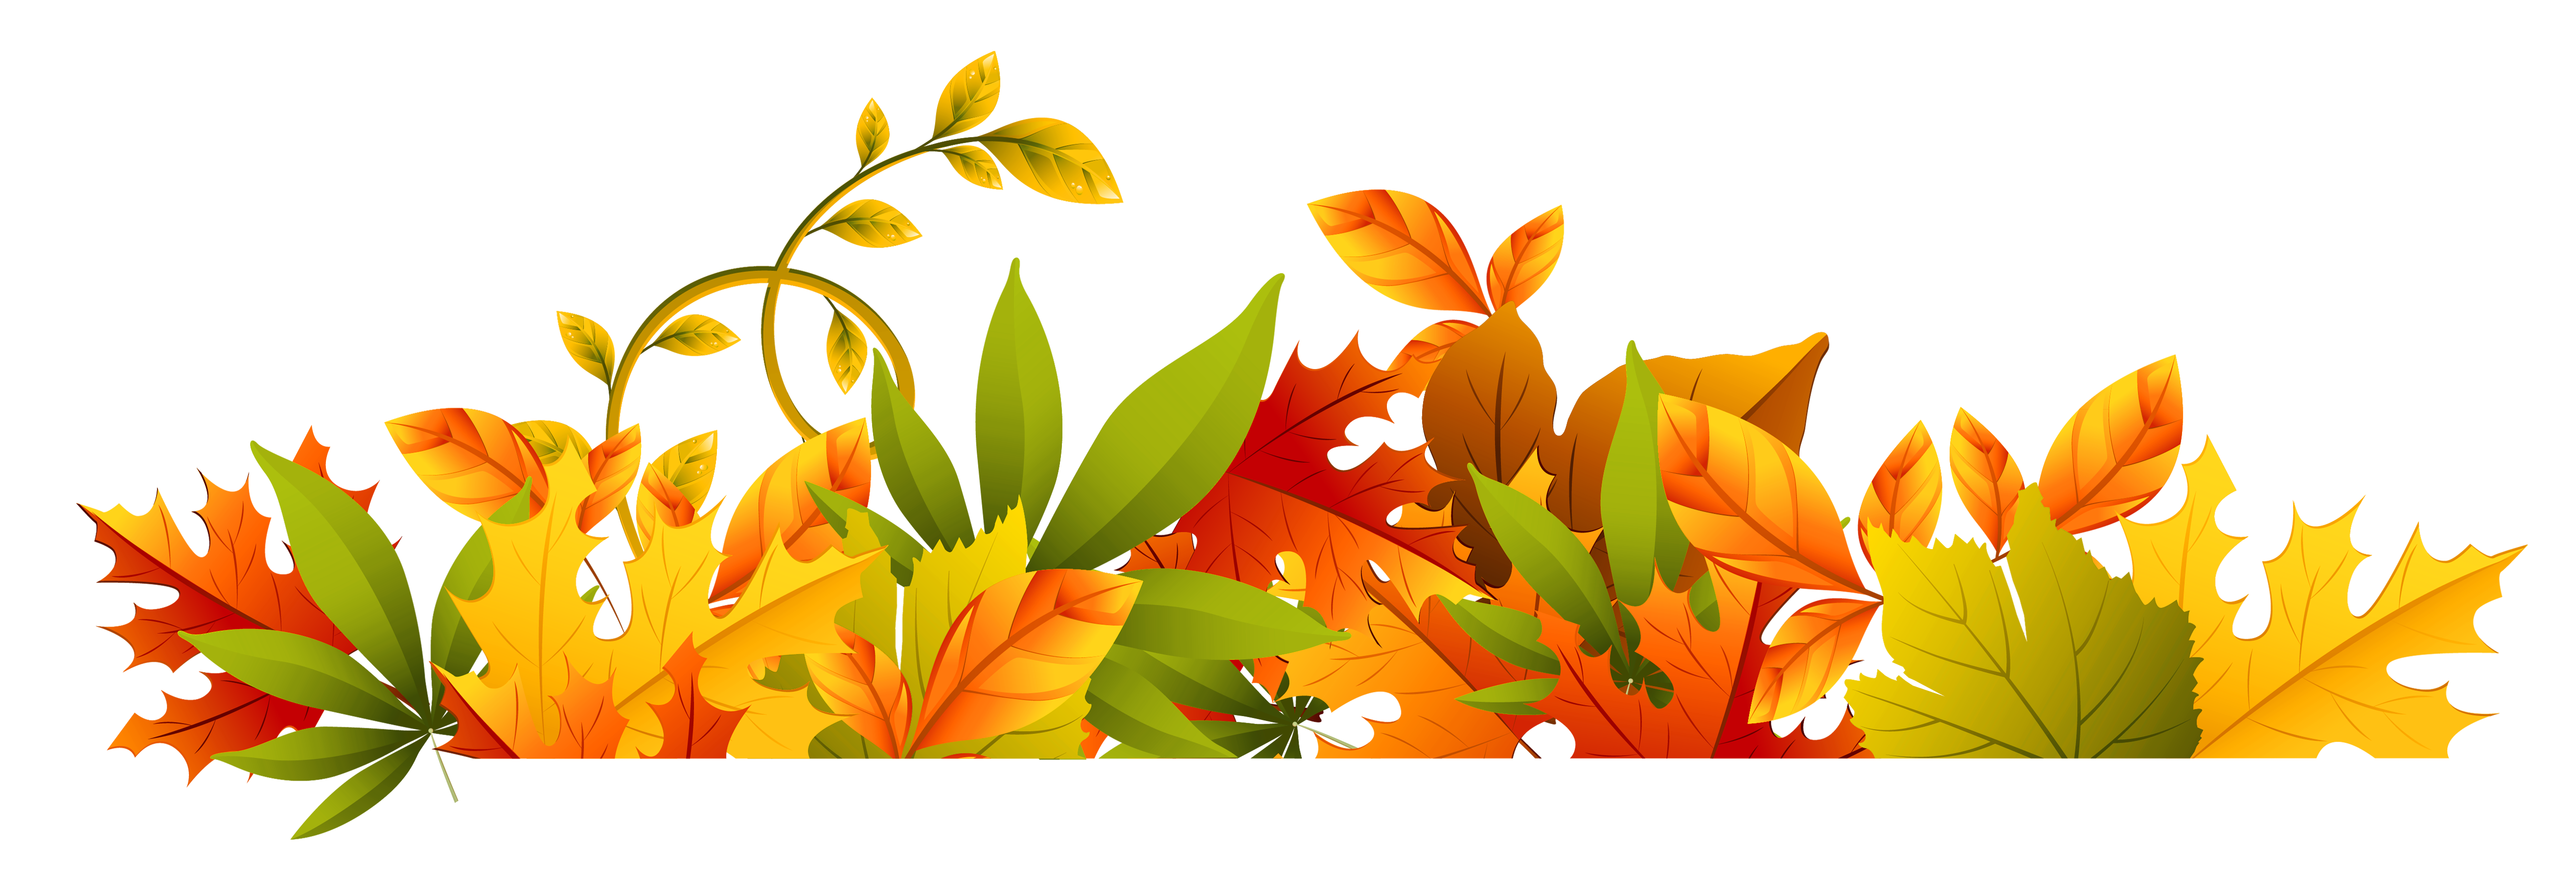 Thanksgiving Pumpkin File PNG Image